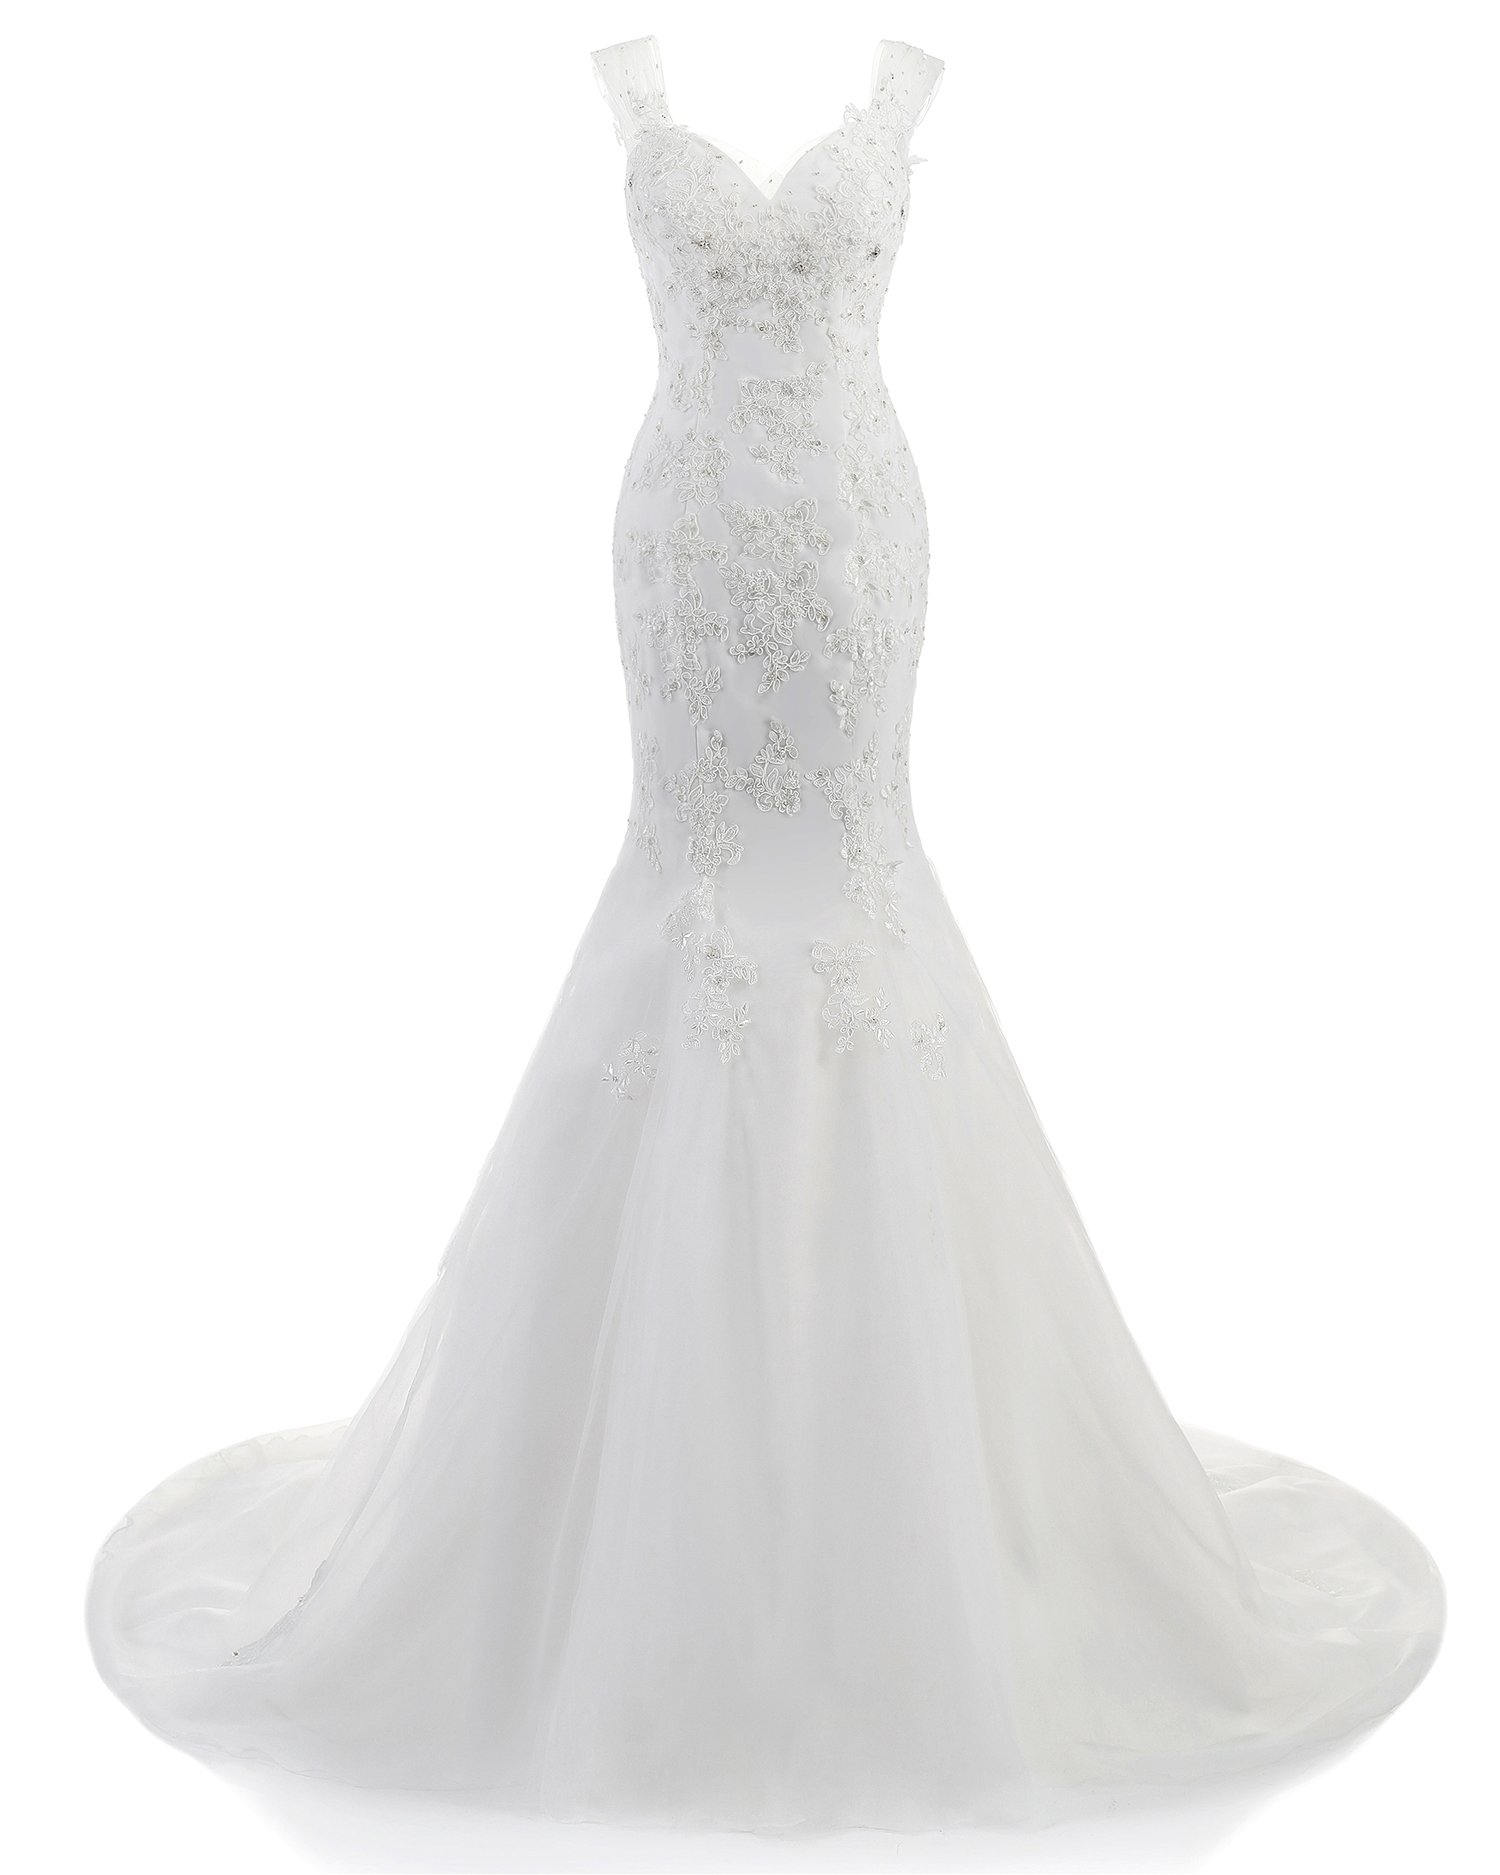 AbaoWedding 2015 Women's Sleeveless Mermaid Wedding Dress Long Ivory (size14) by ABaowedding